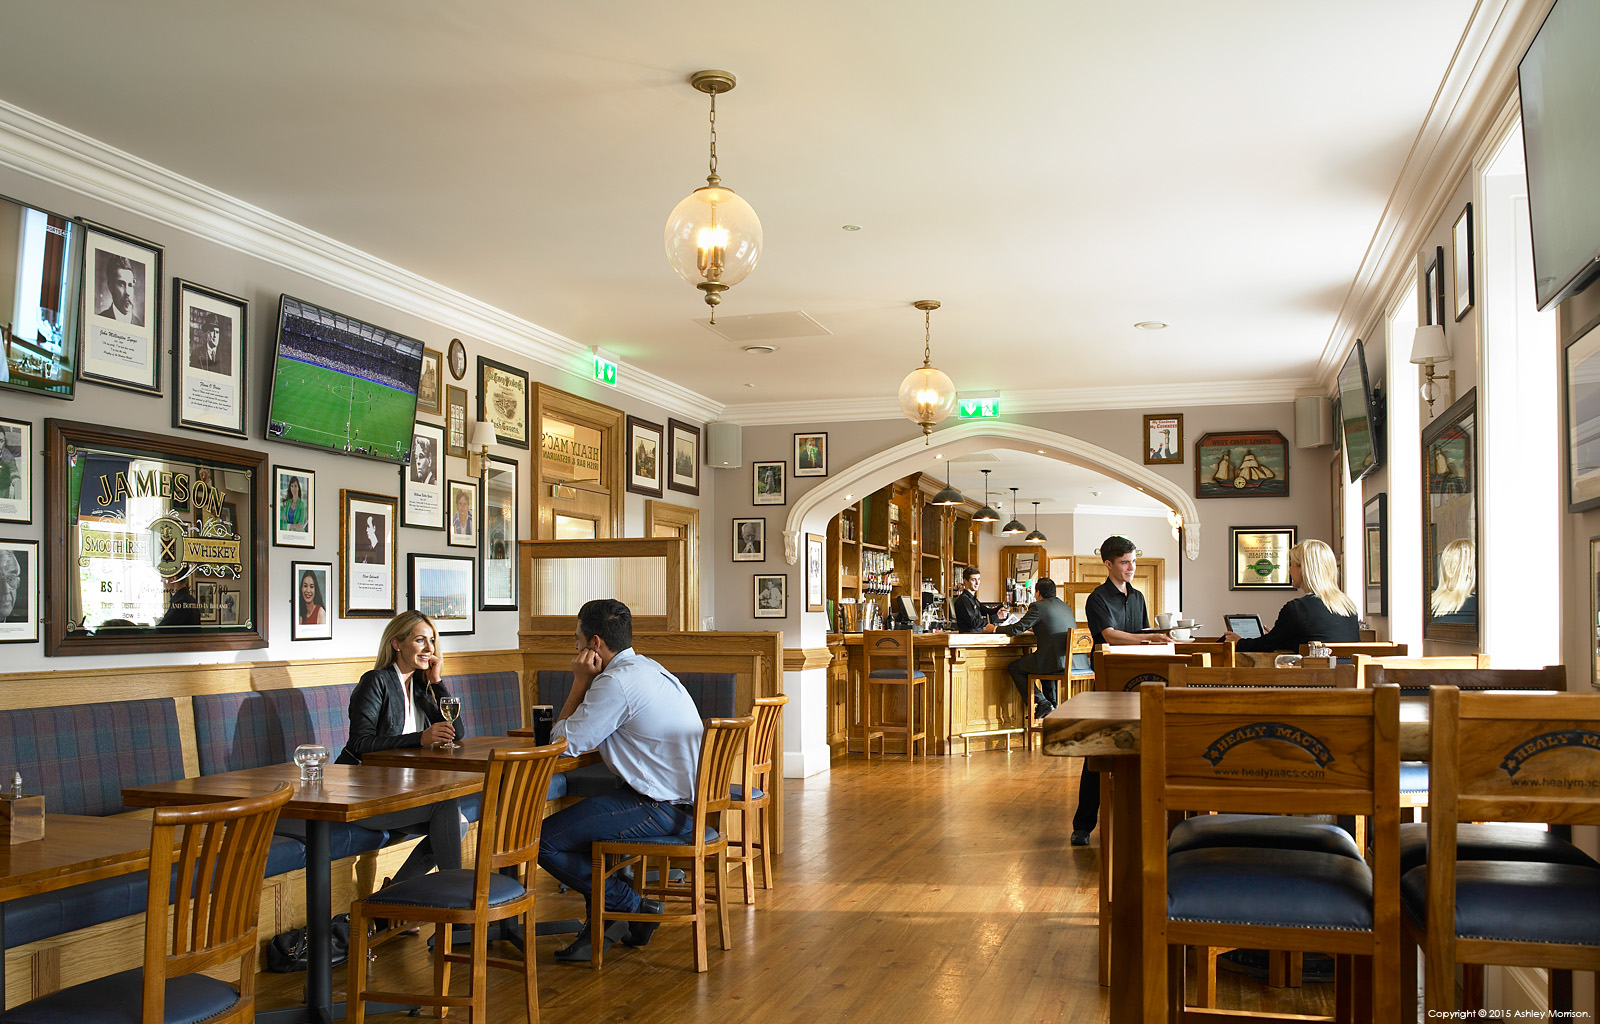 The Healy Mac's bar at the Breaffy House Resort in the County Mayo town of Castlebar.